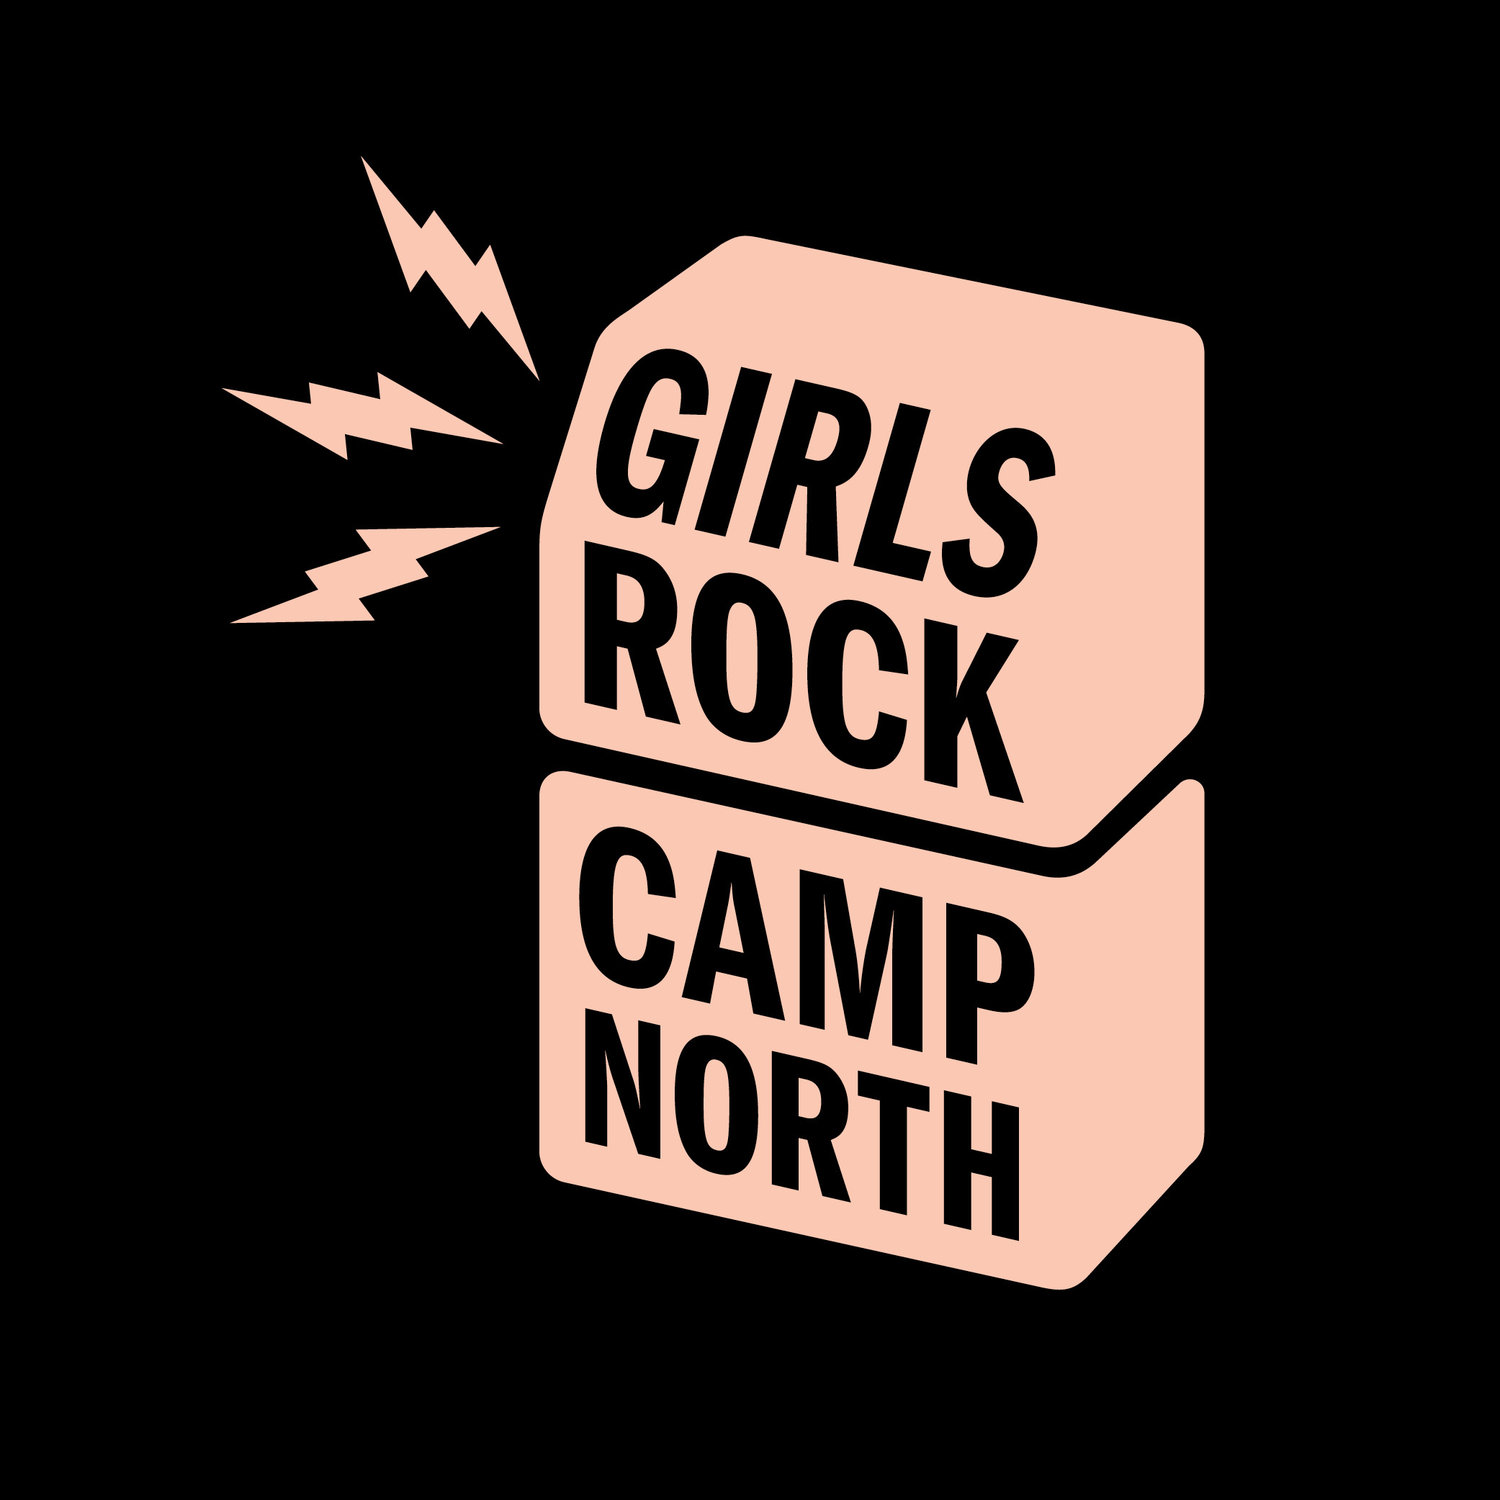 Girls Rock Camp North